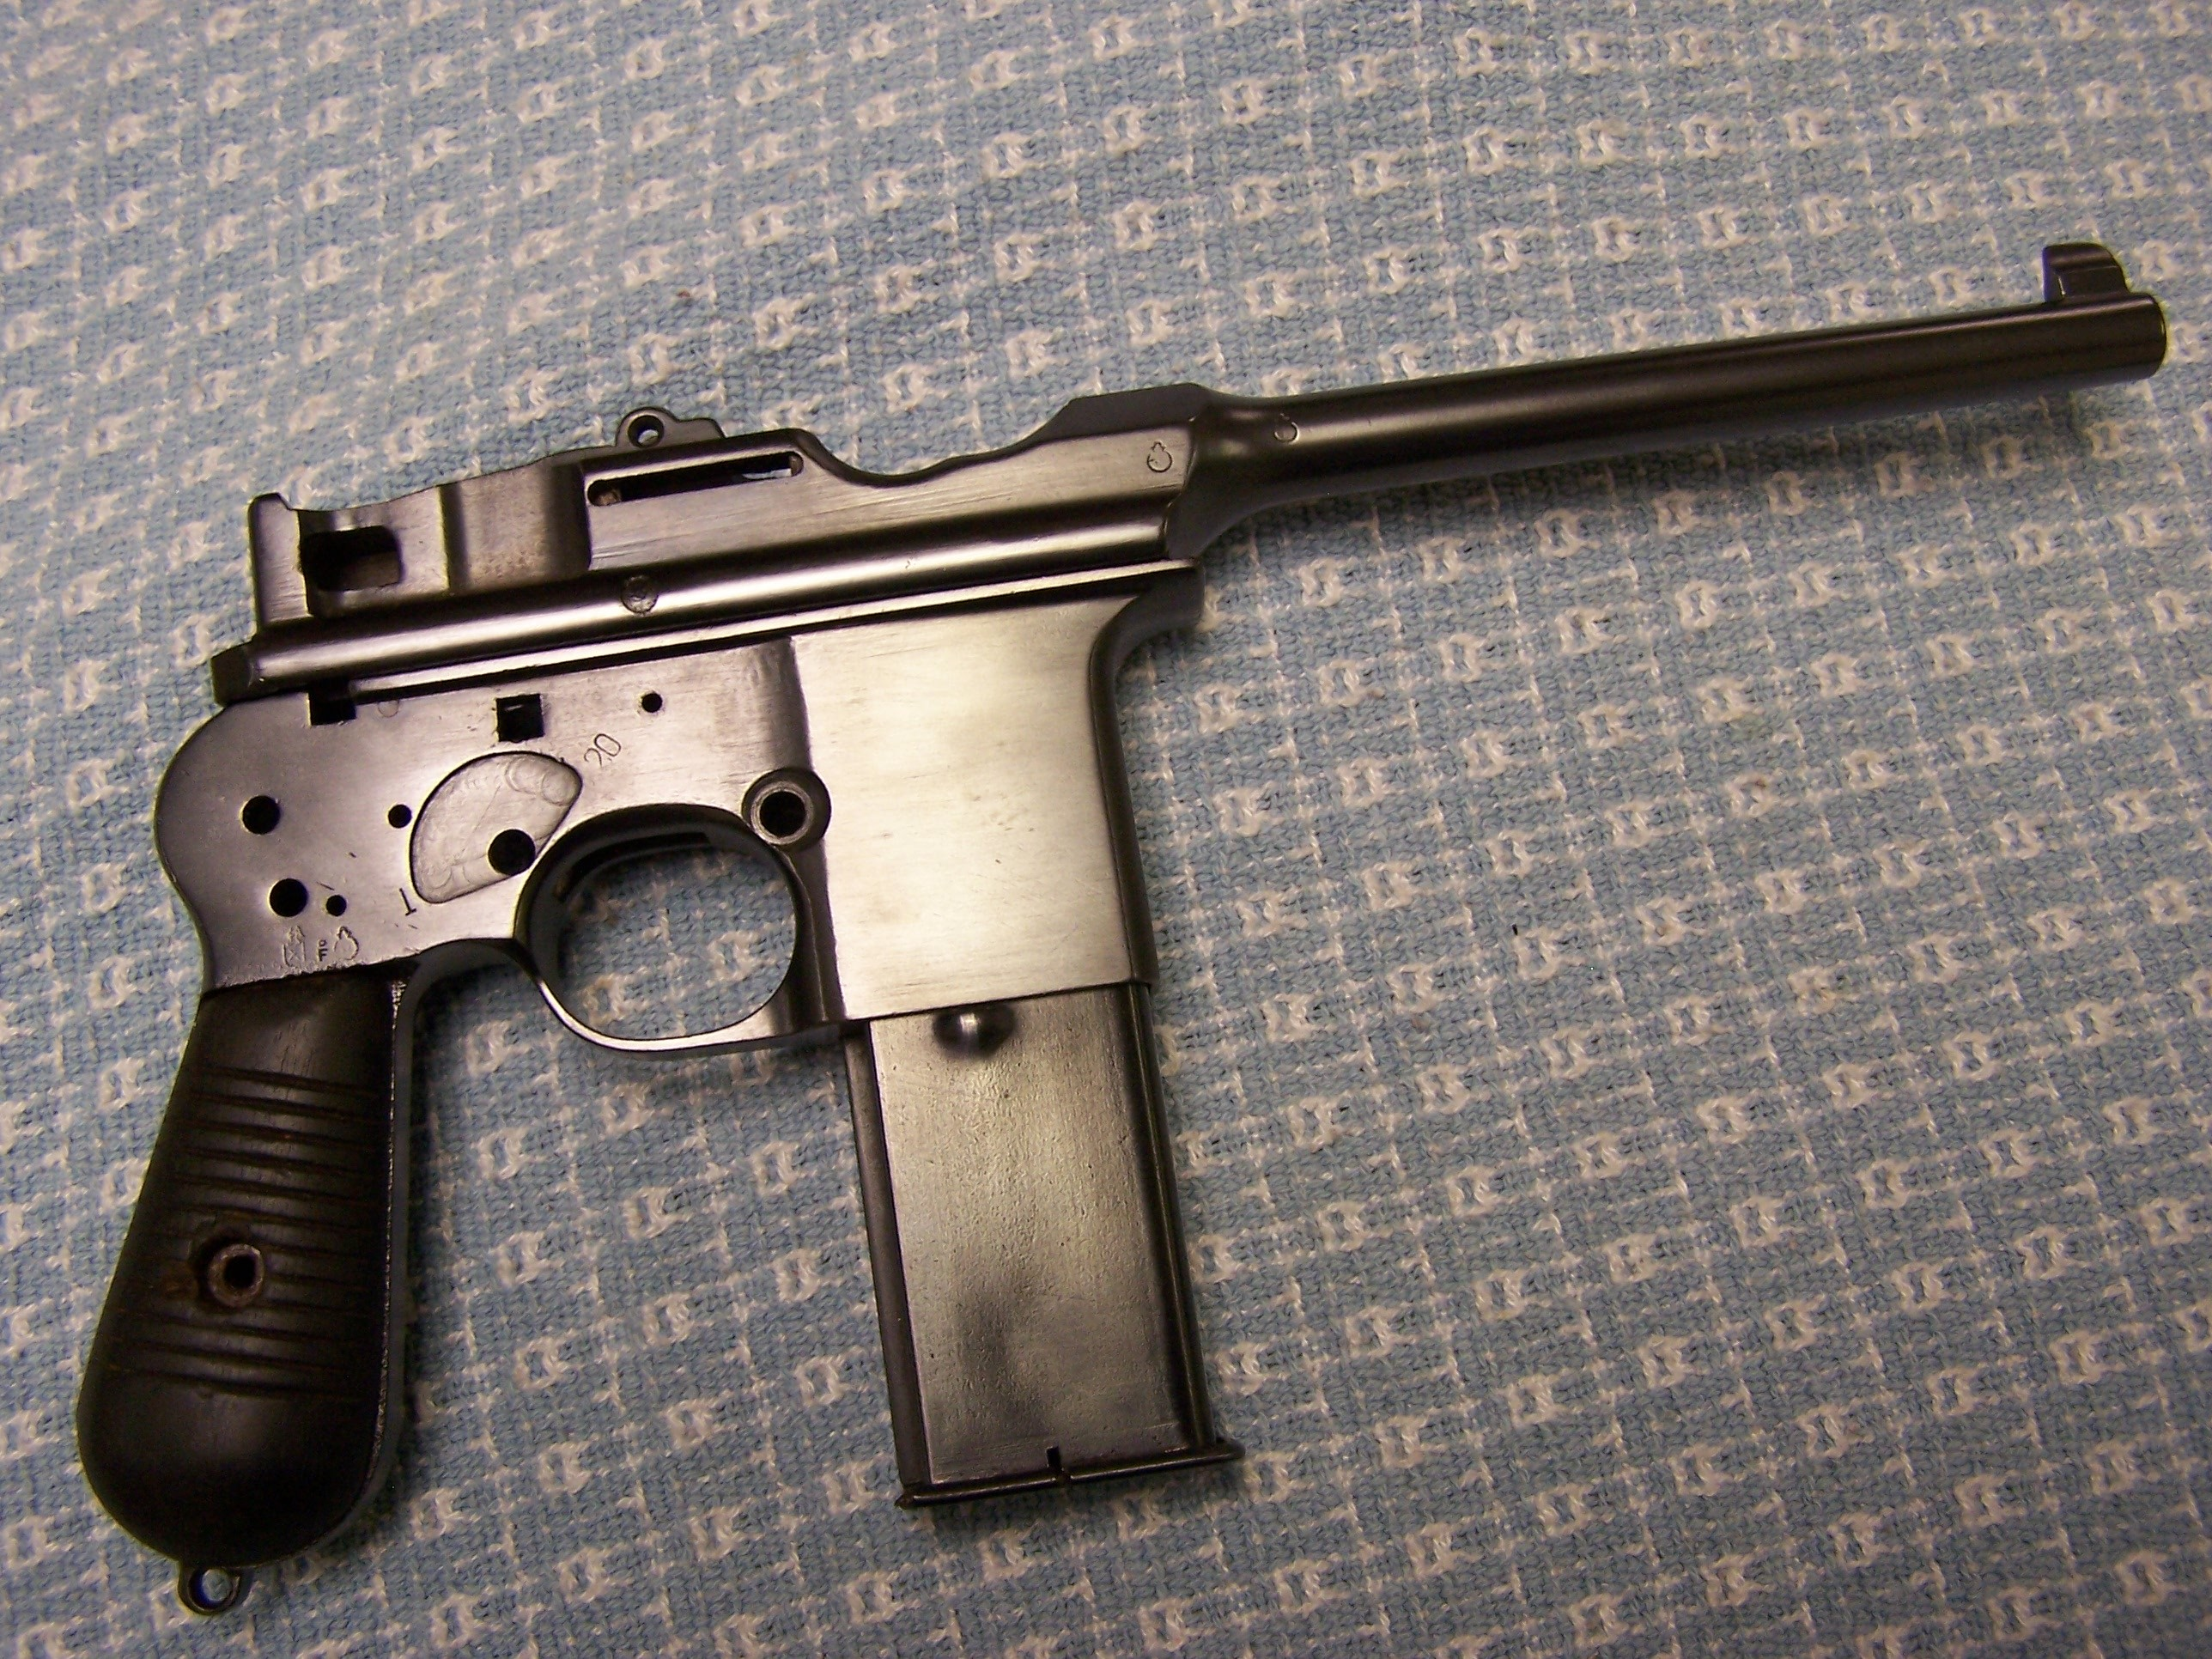 ASTRA 903 7.63mm BROOMHANDLE MACHINE PISTOL, FORM 4 TRANSFERABLE